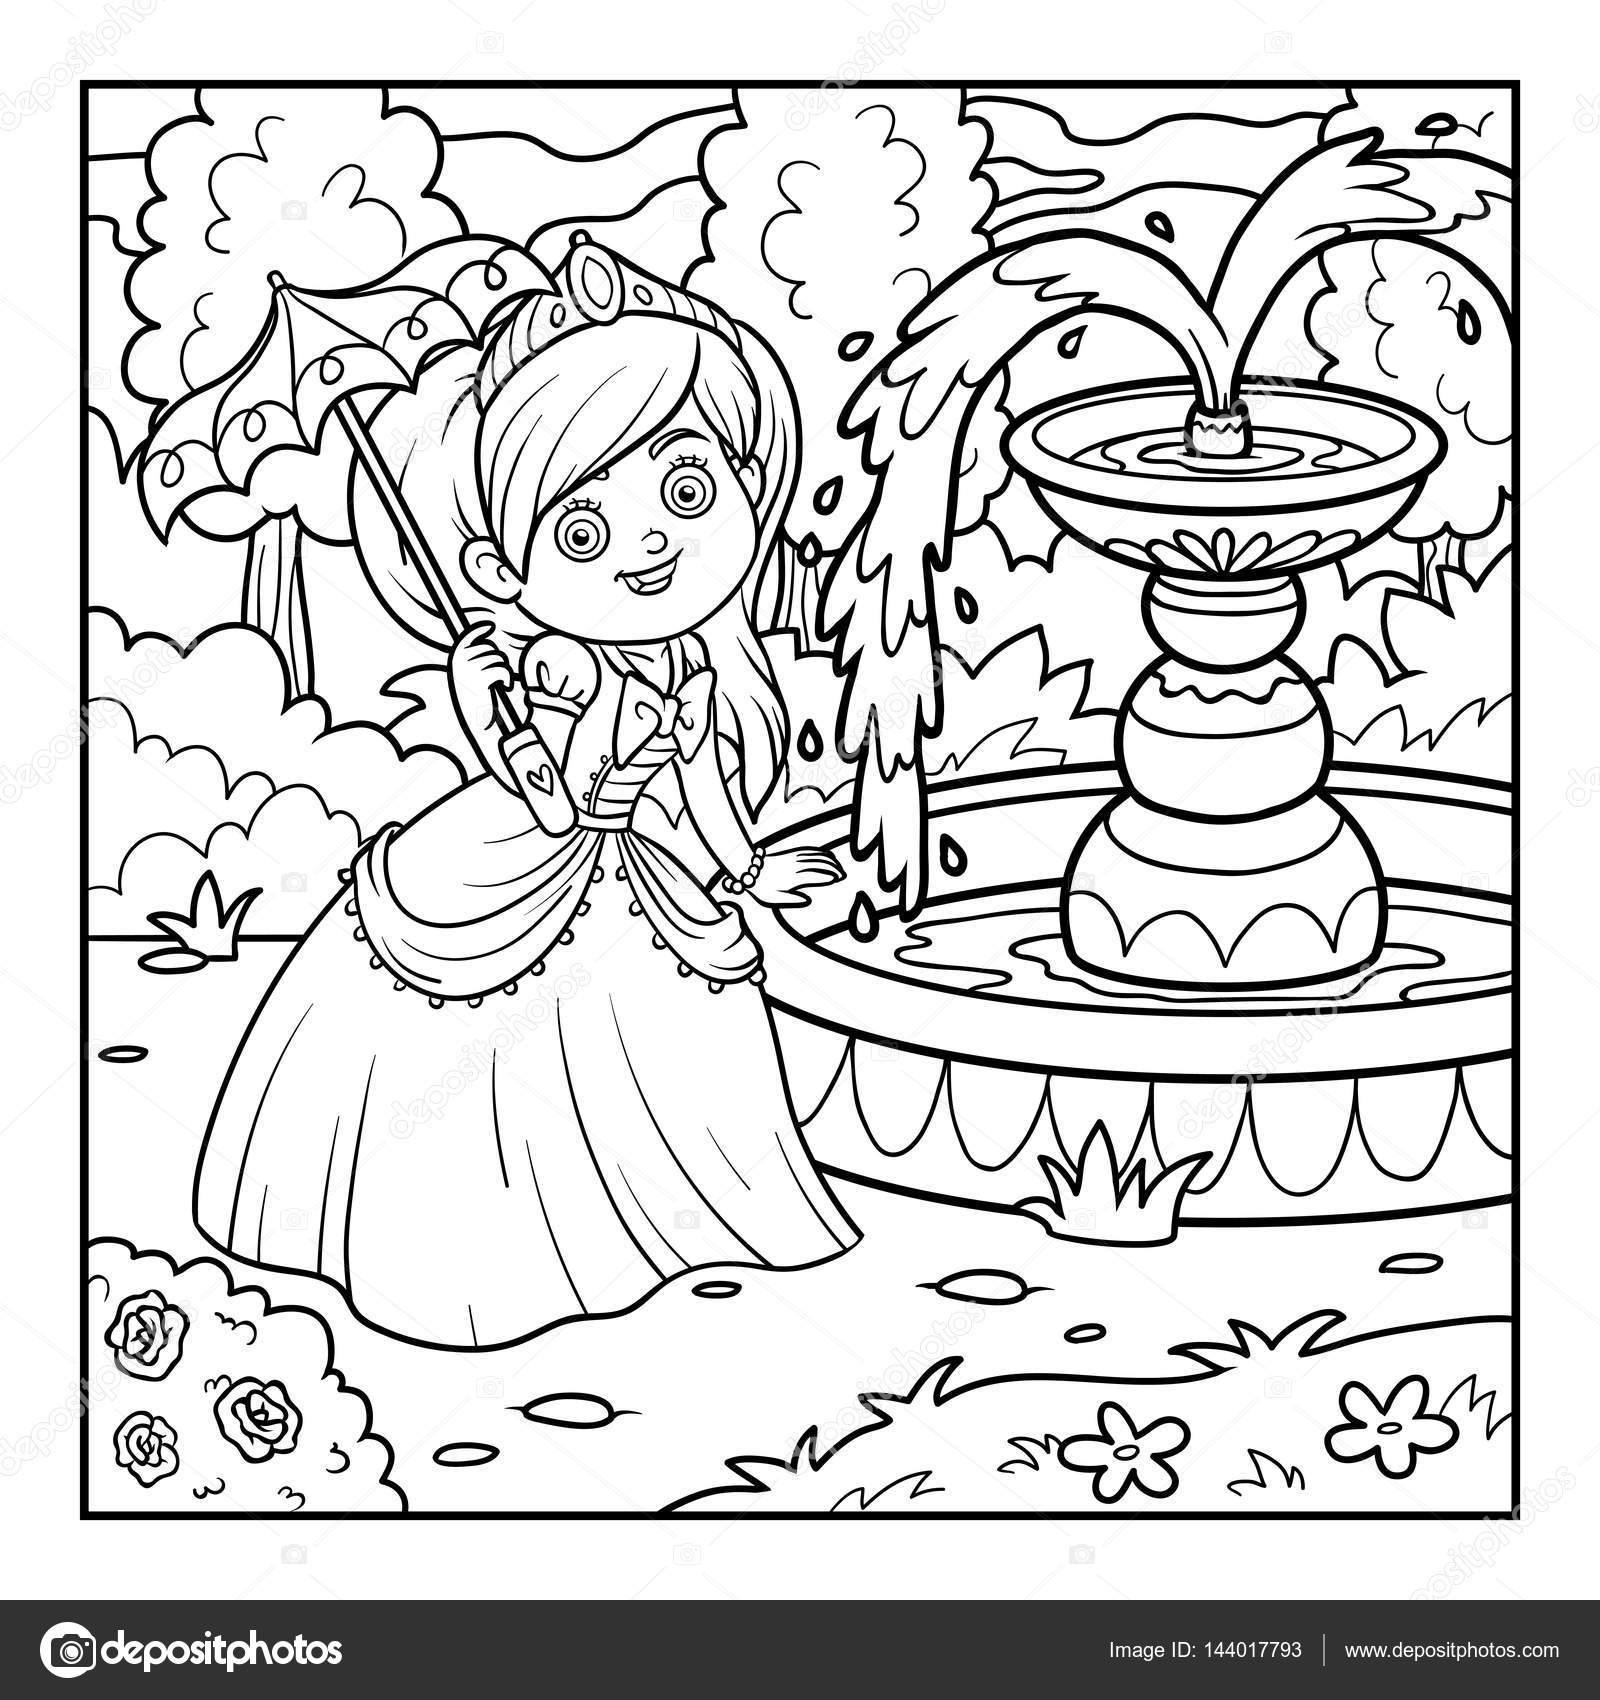 Coloring book princess - Coloring Book Princess With Umbrella Stock Illustration